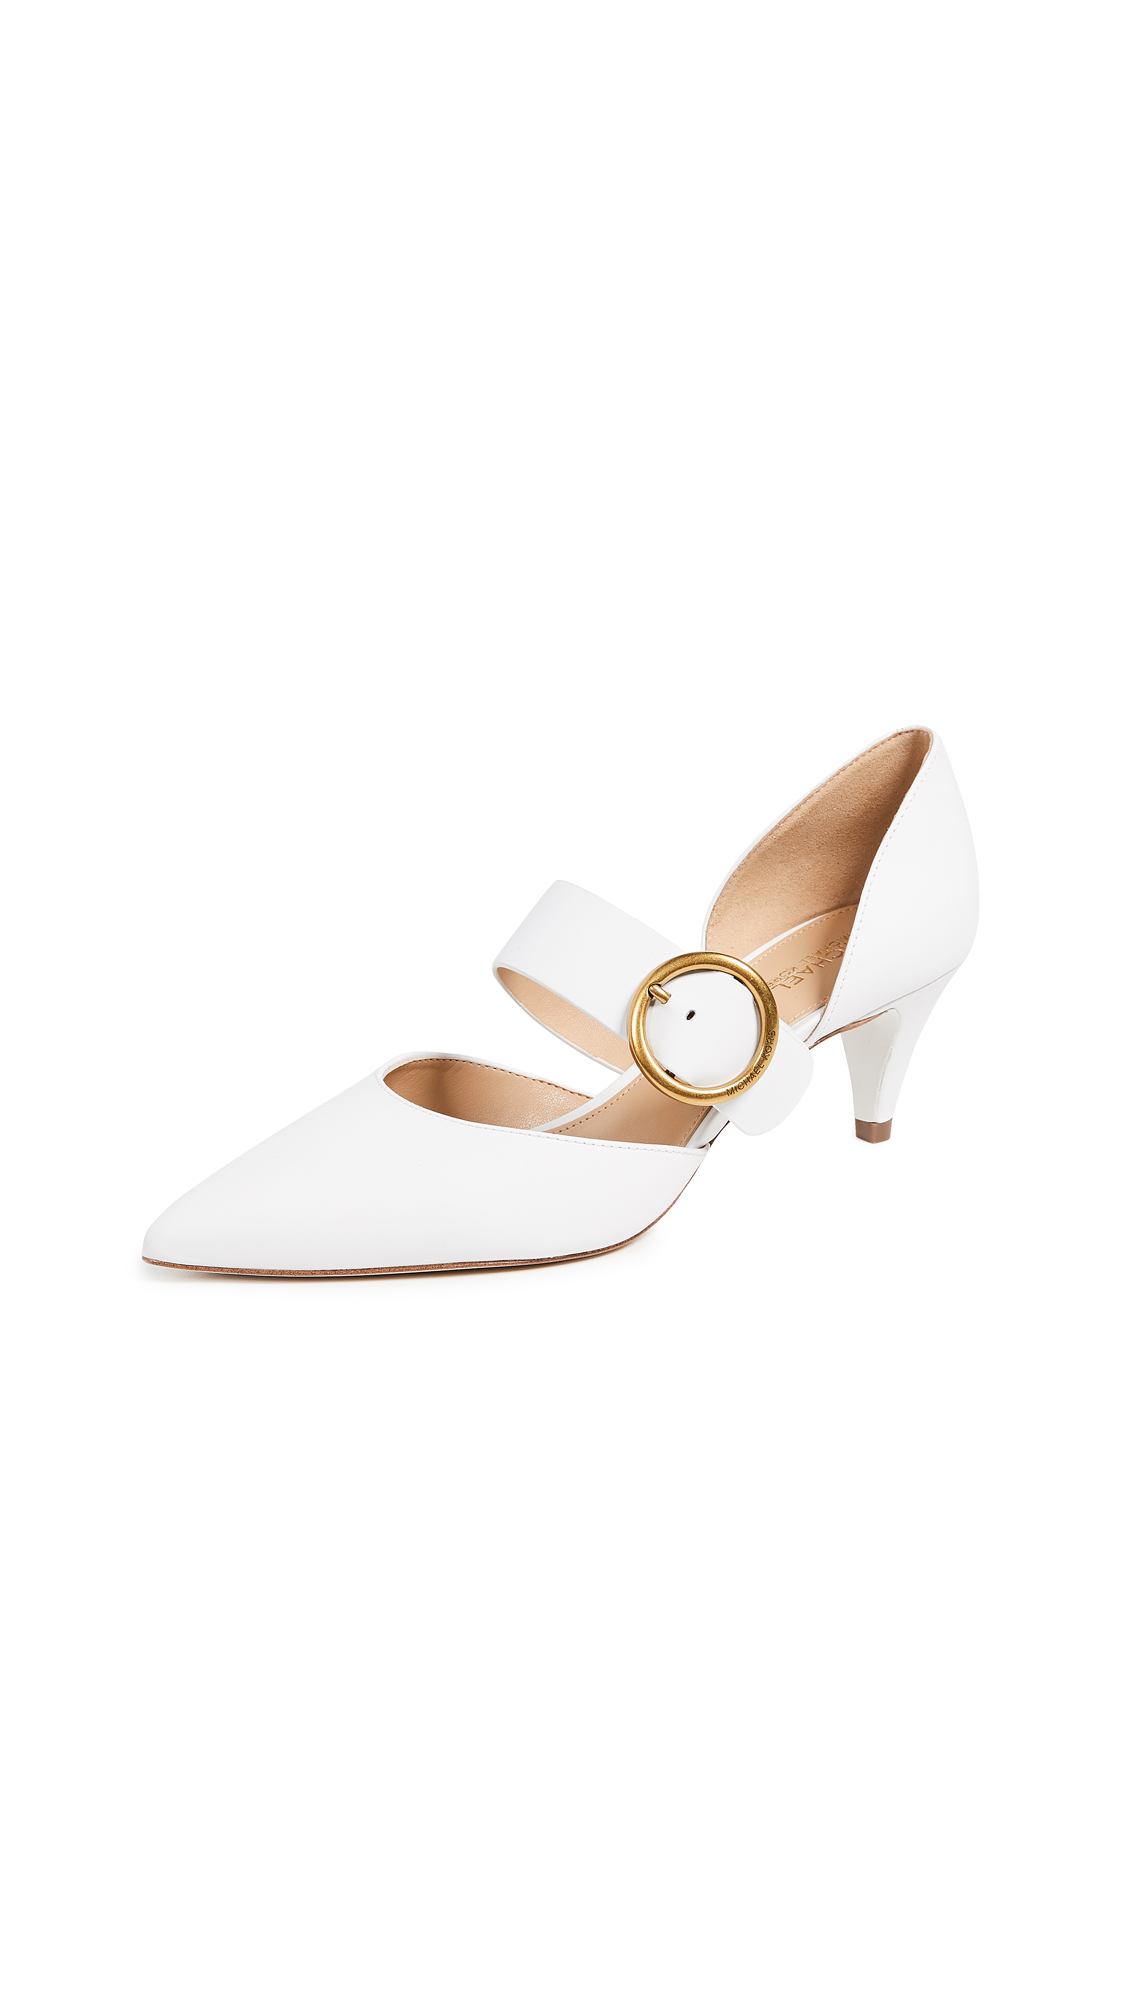 MICHAEL Michael Kors Estelle Kitten Heel Pumps - Optic White